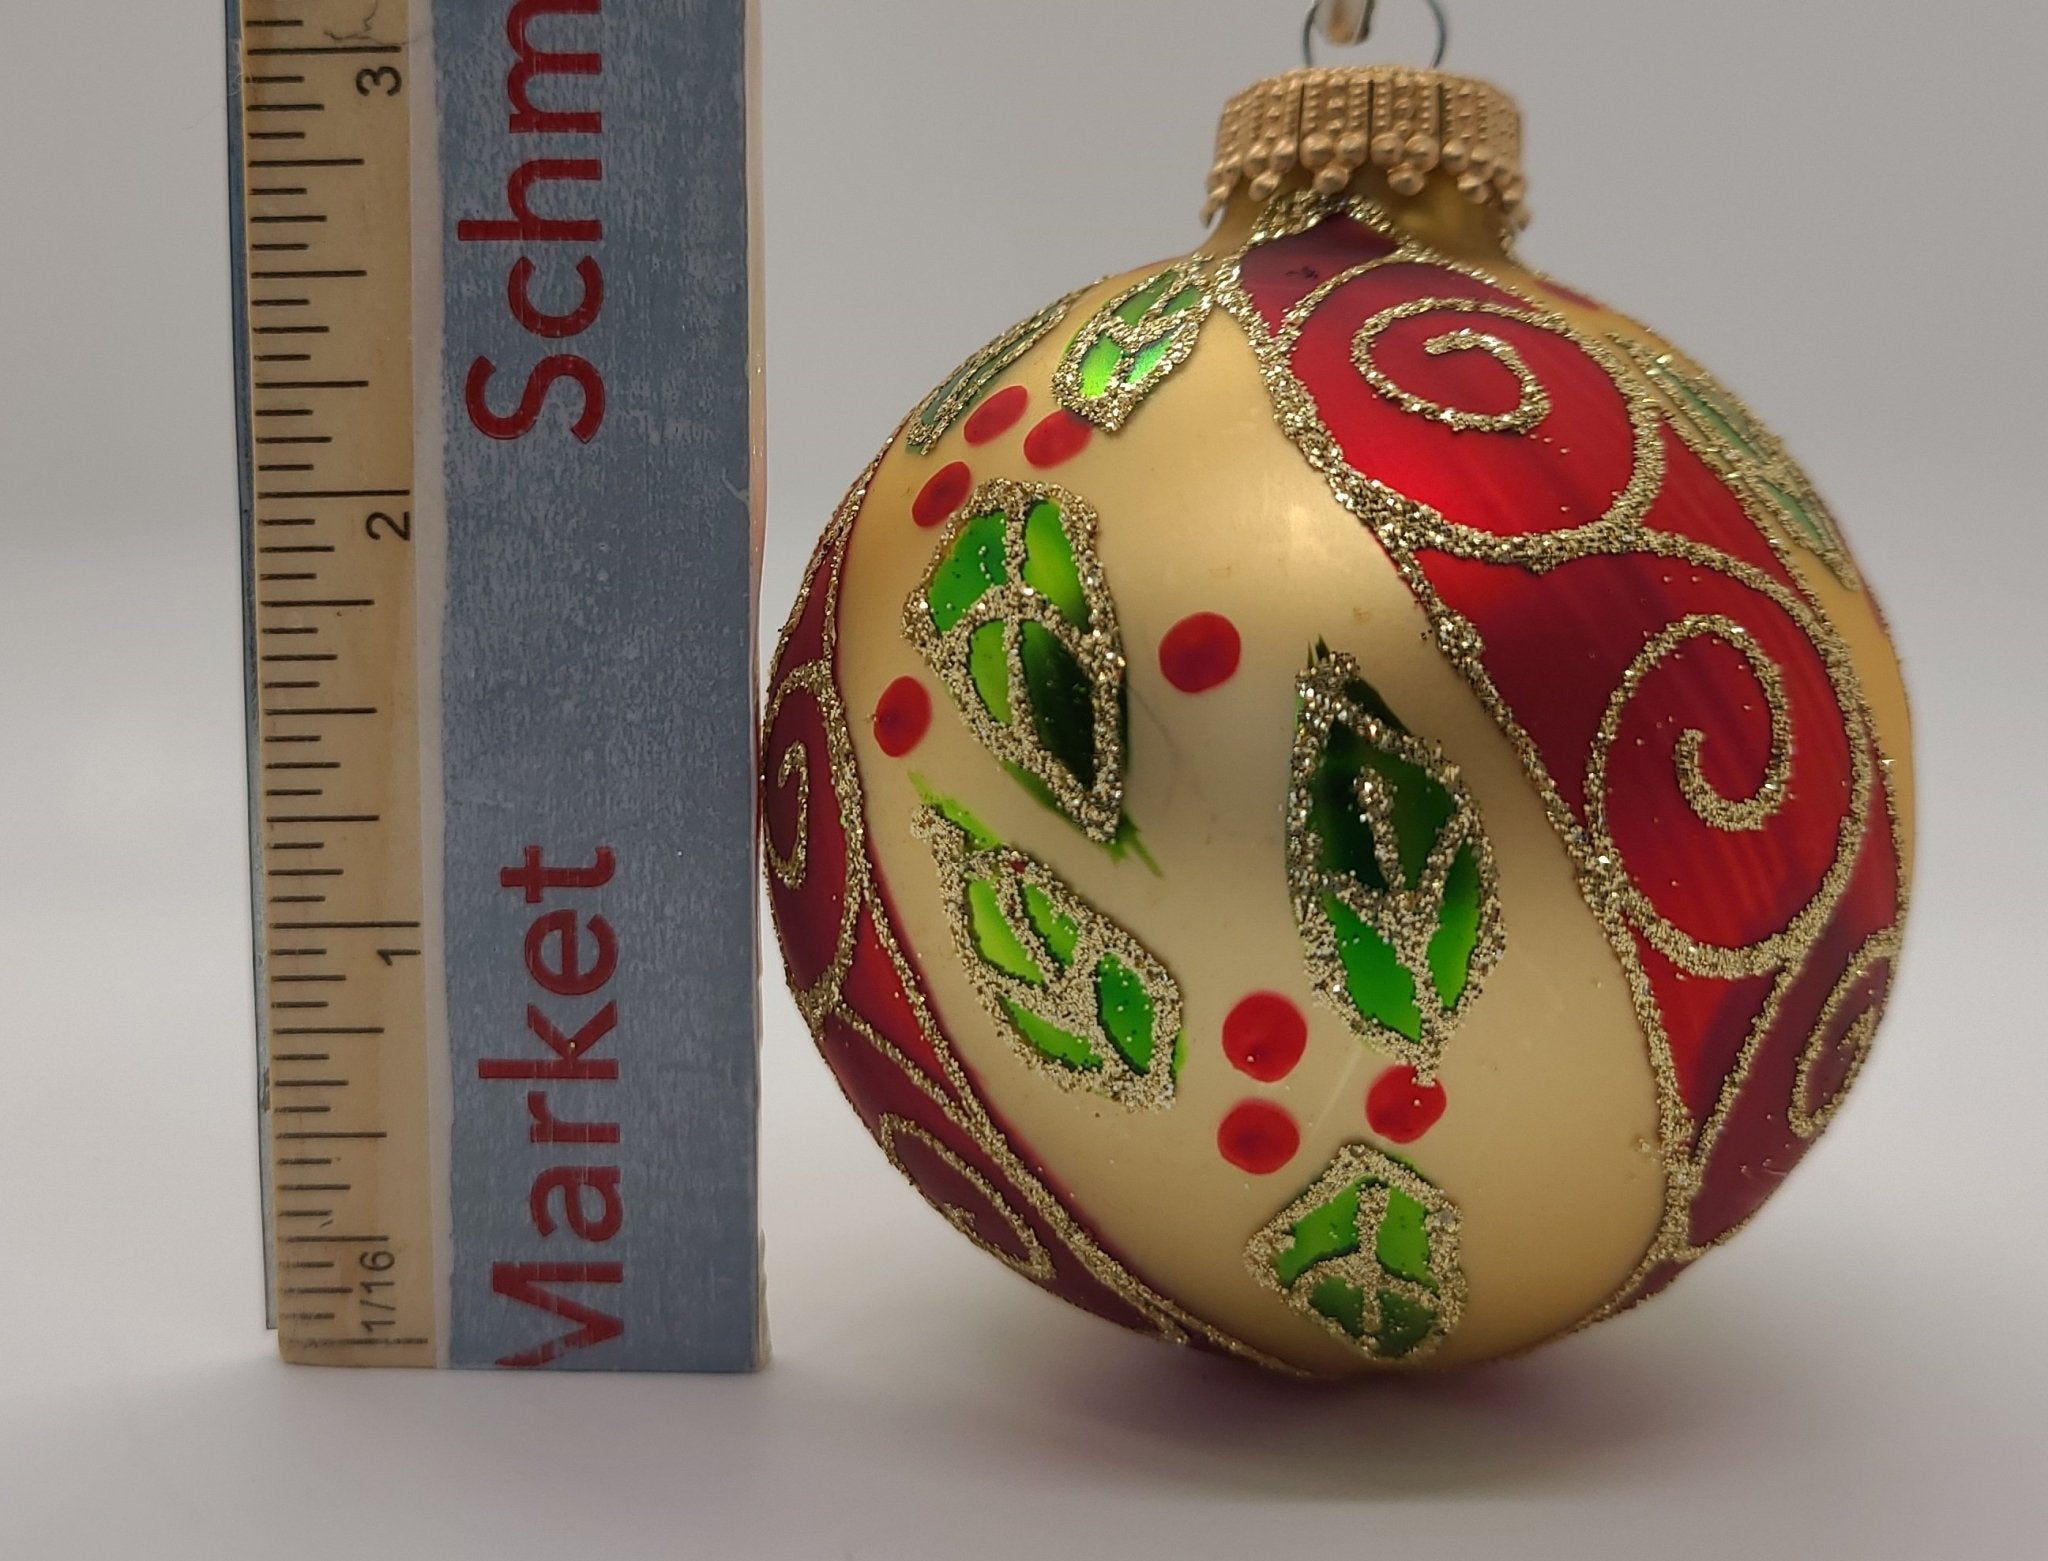 Chiffon Gold Shape ball na may Holly at Scroll na may Gold Crown Cap Ornament - Schmidt Christmas Market Christmas Decoration